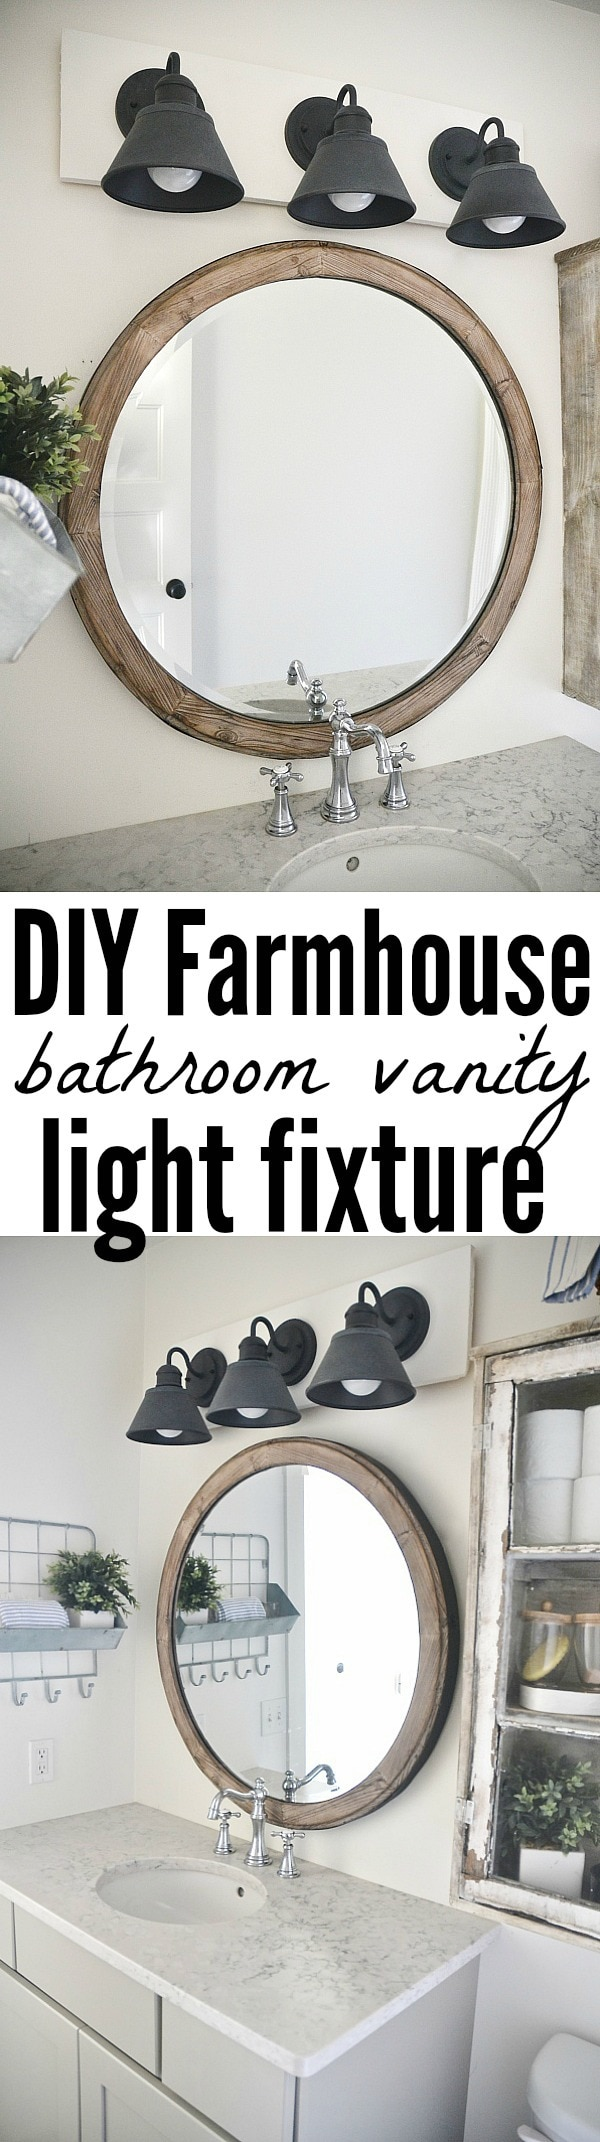 Check Out This DIY Light Fixture [HERE]